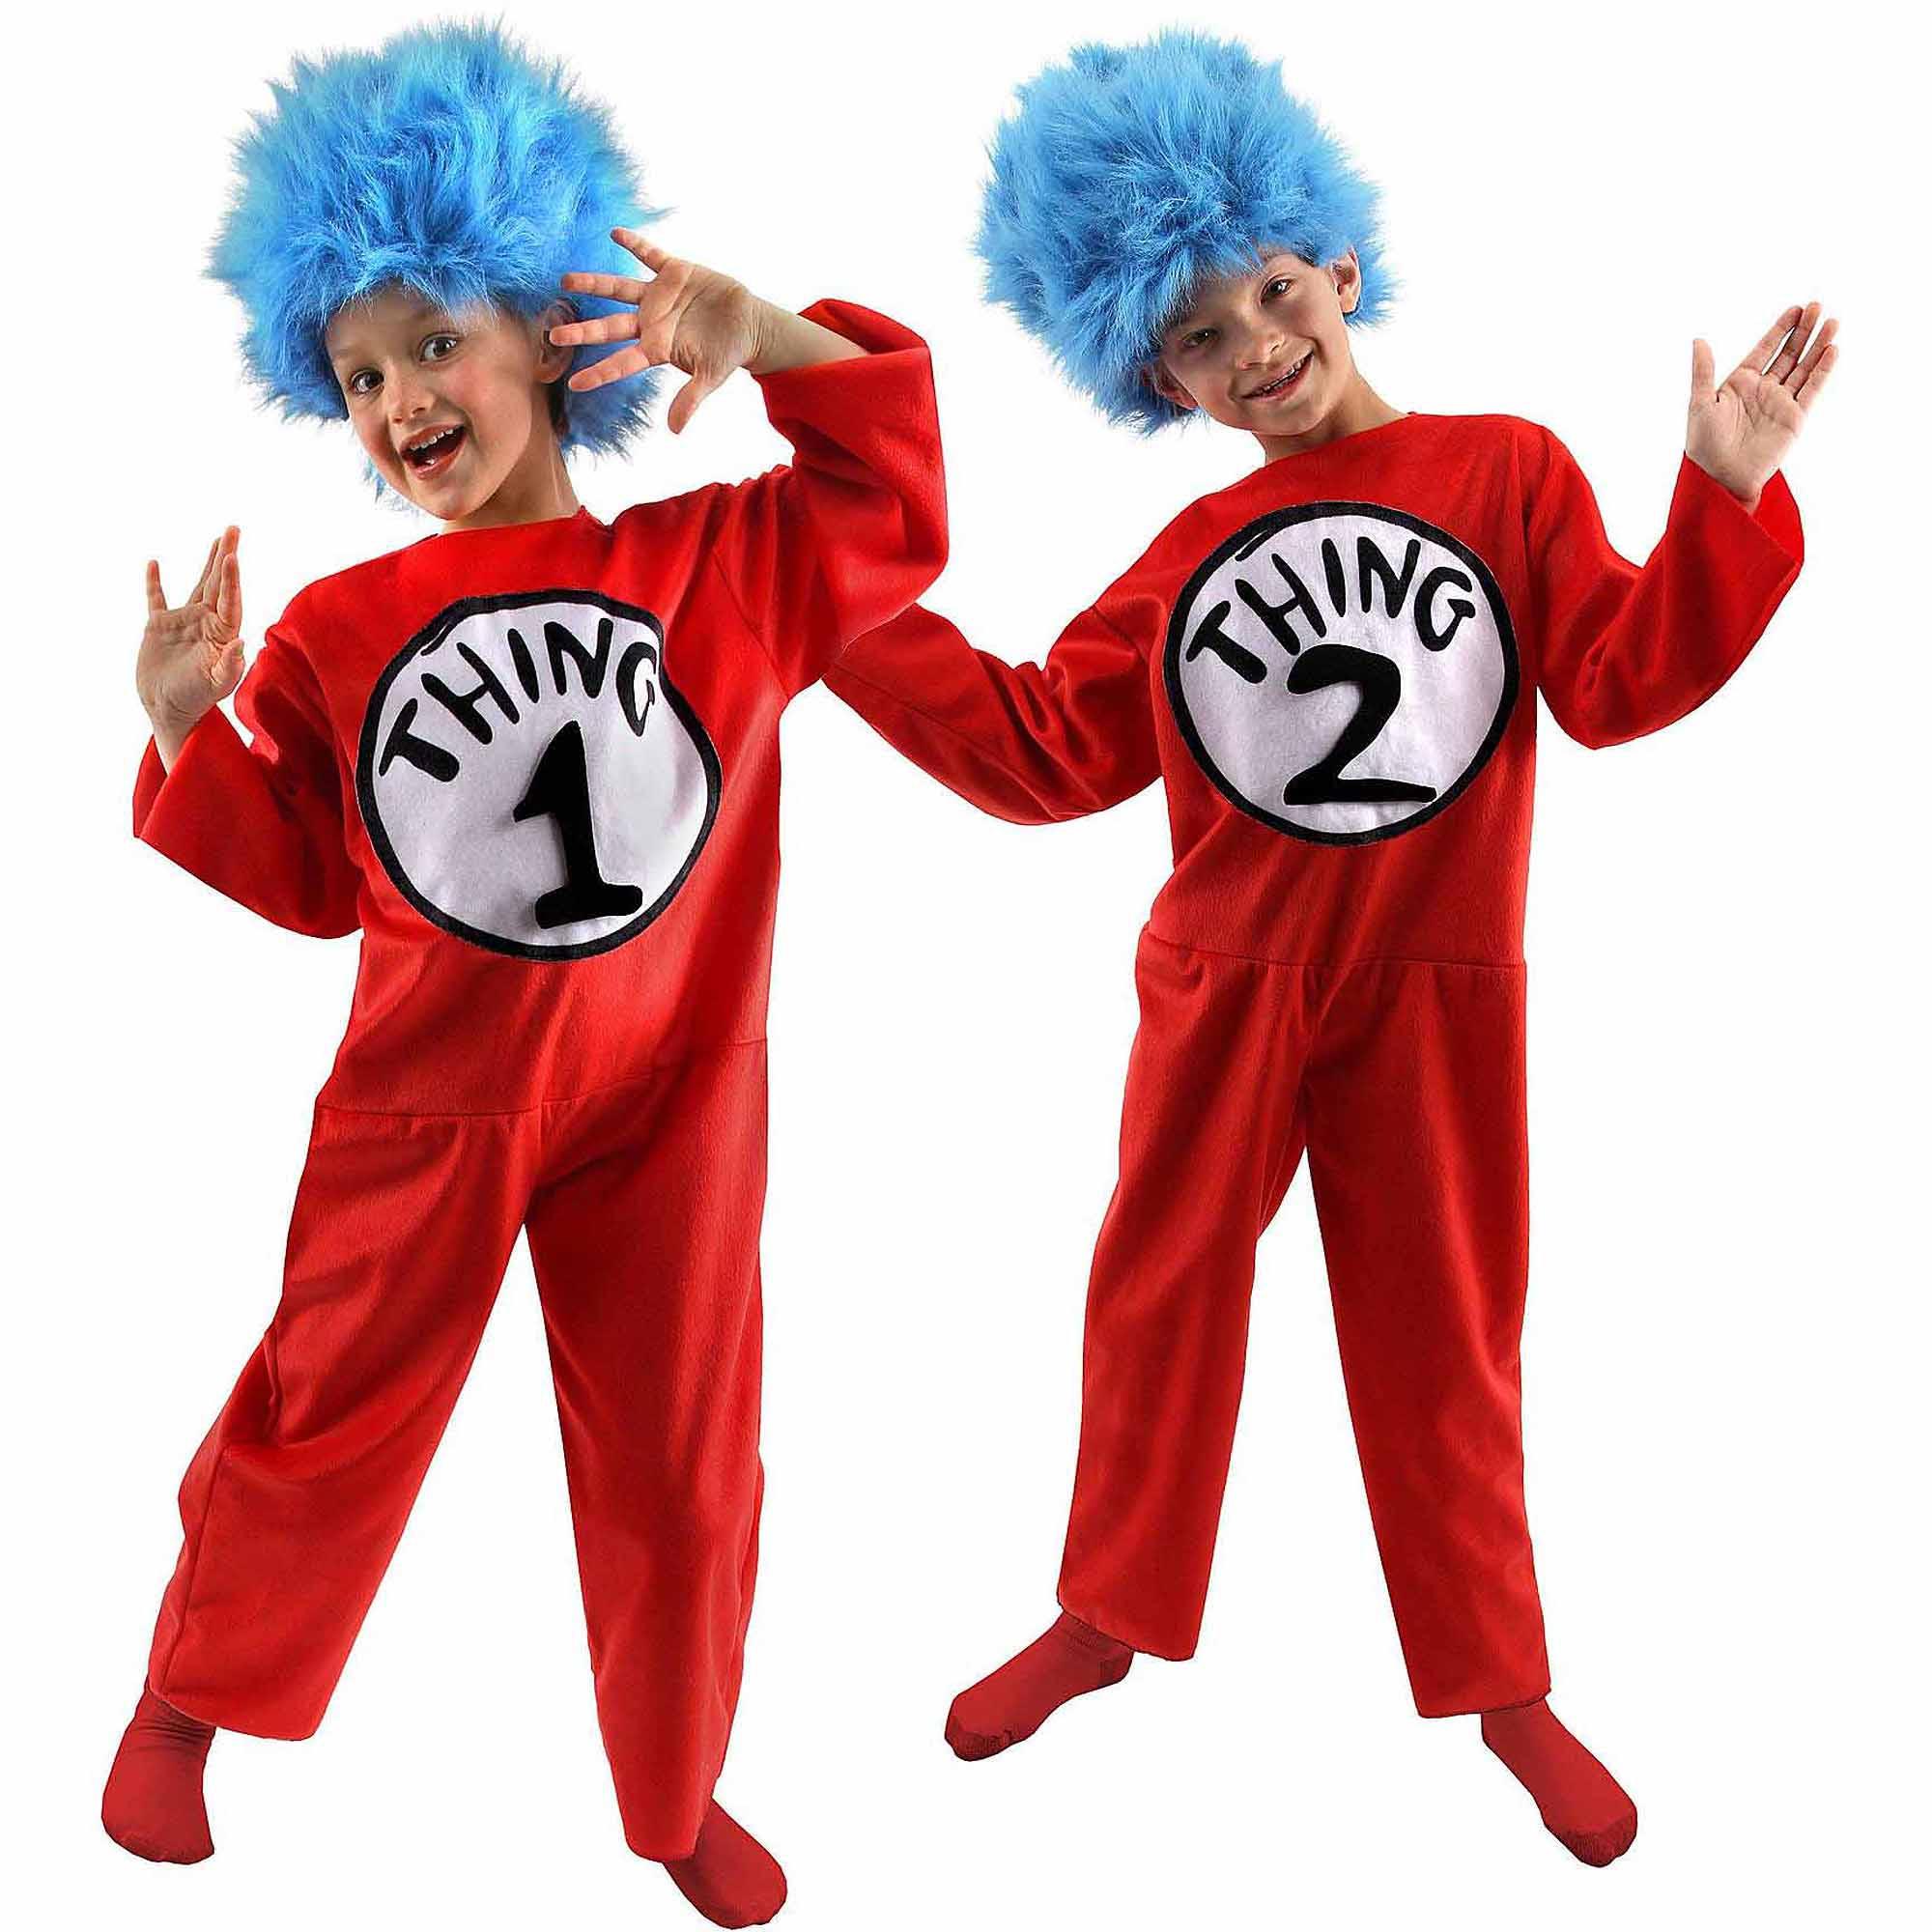 Dr Seuss The Cat In The Hat Thing 1 And Thing 2 Child Halloween